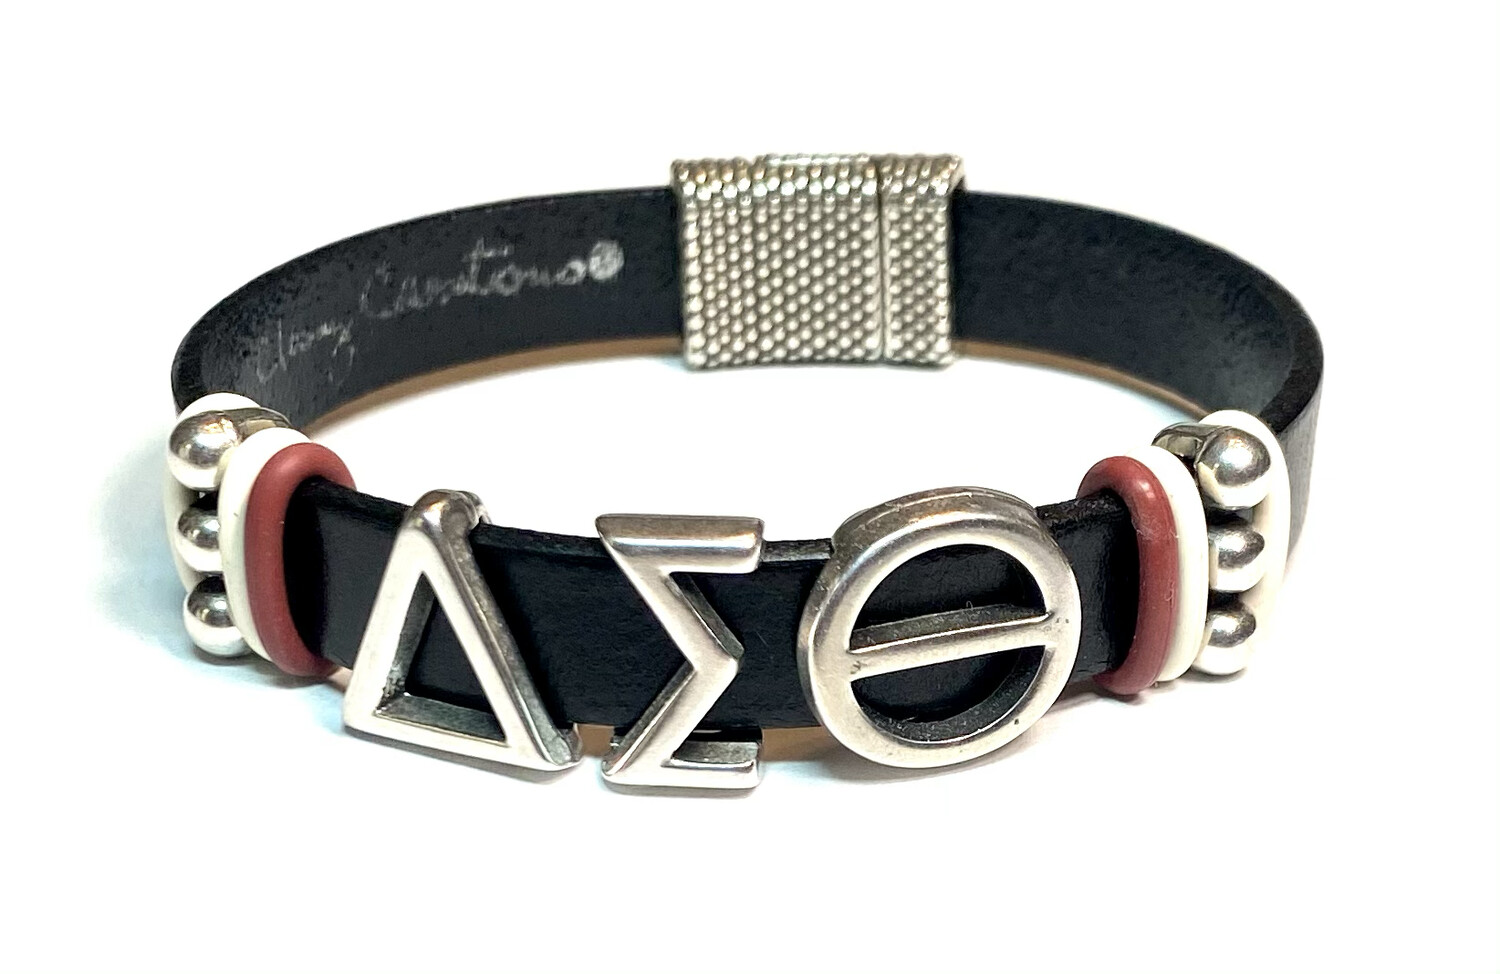 Bracelet | Black And Silver Delta Sigma Theta Silver Beads Flat Leather Classy Creations Originals